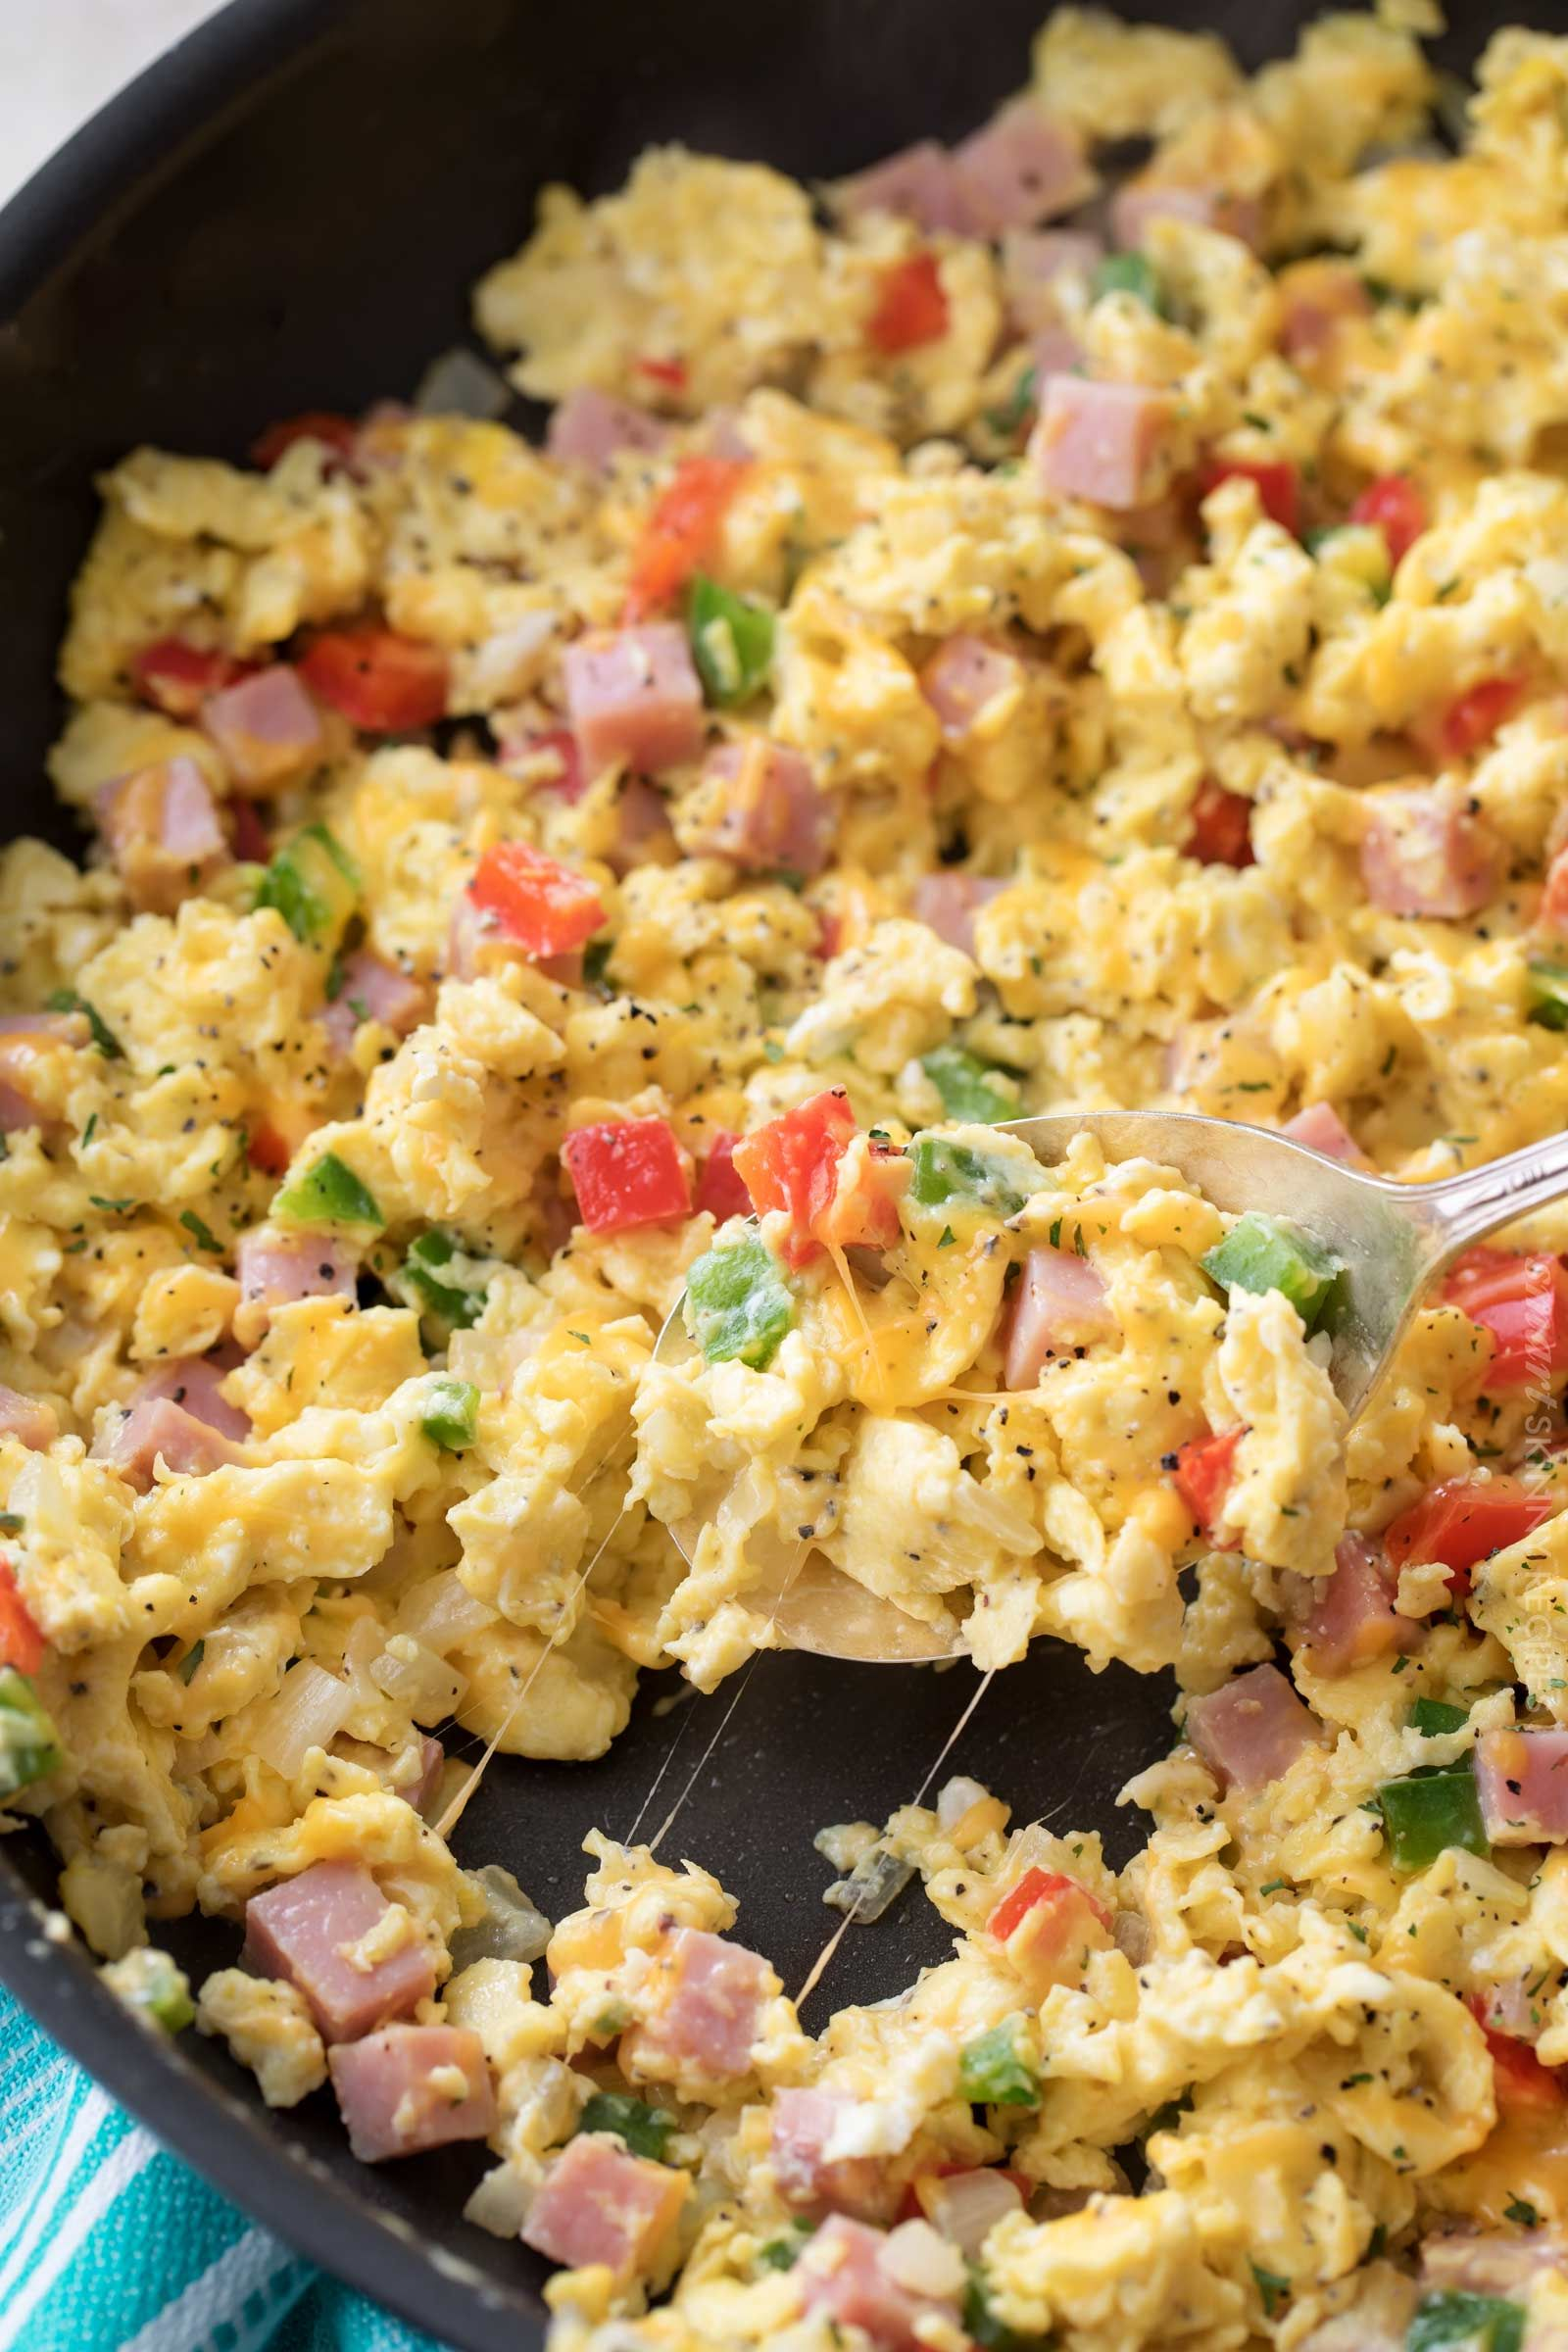 Denver Omelet Scrambled Eggs Skillet Perfectly fluffy scrambled eggs mixed with sautéed onion, peppers and diced ham, and topped with gooey cheddar cheese.  Perfect for breakfast, brunch or even brinner, and at only 3 weight watchers smart points, it's an amazingly healthy and nutritious recipe! |